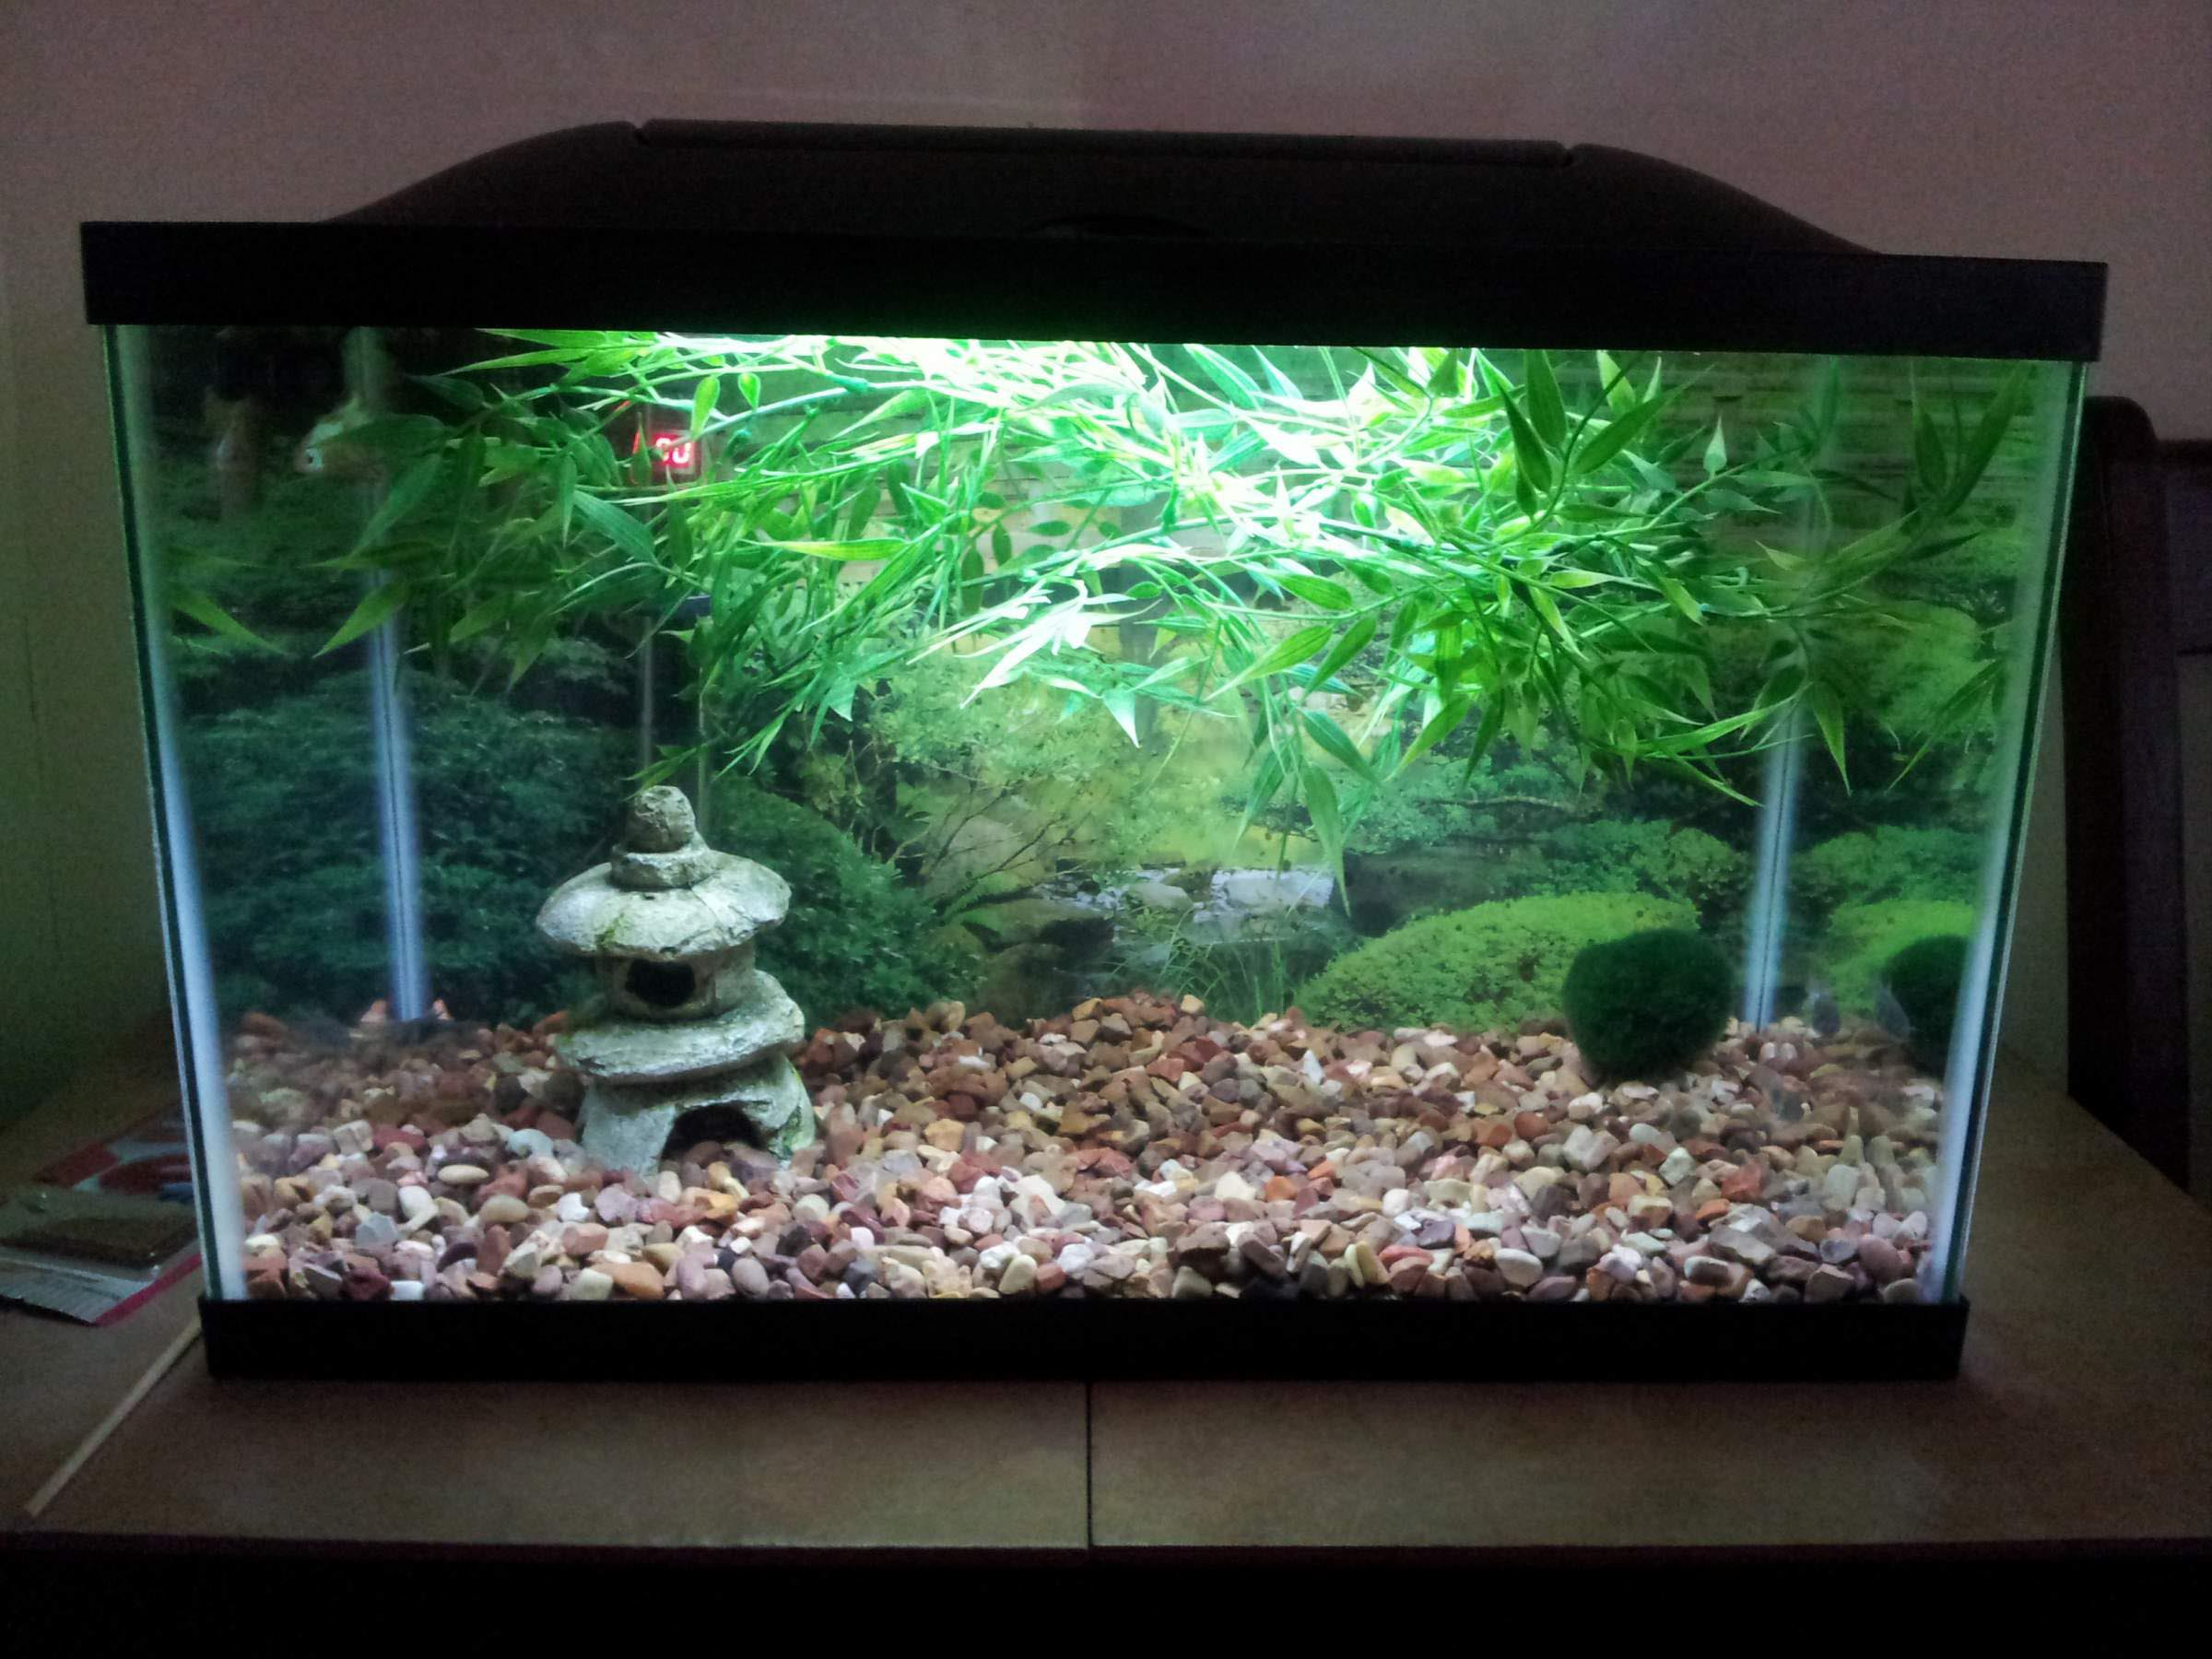 Fish aquarium decorations 28 images popular fish for Aquarium decoration ideas